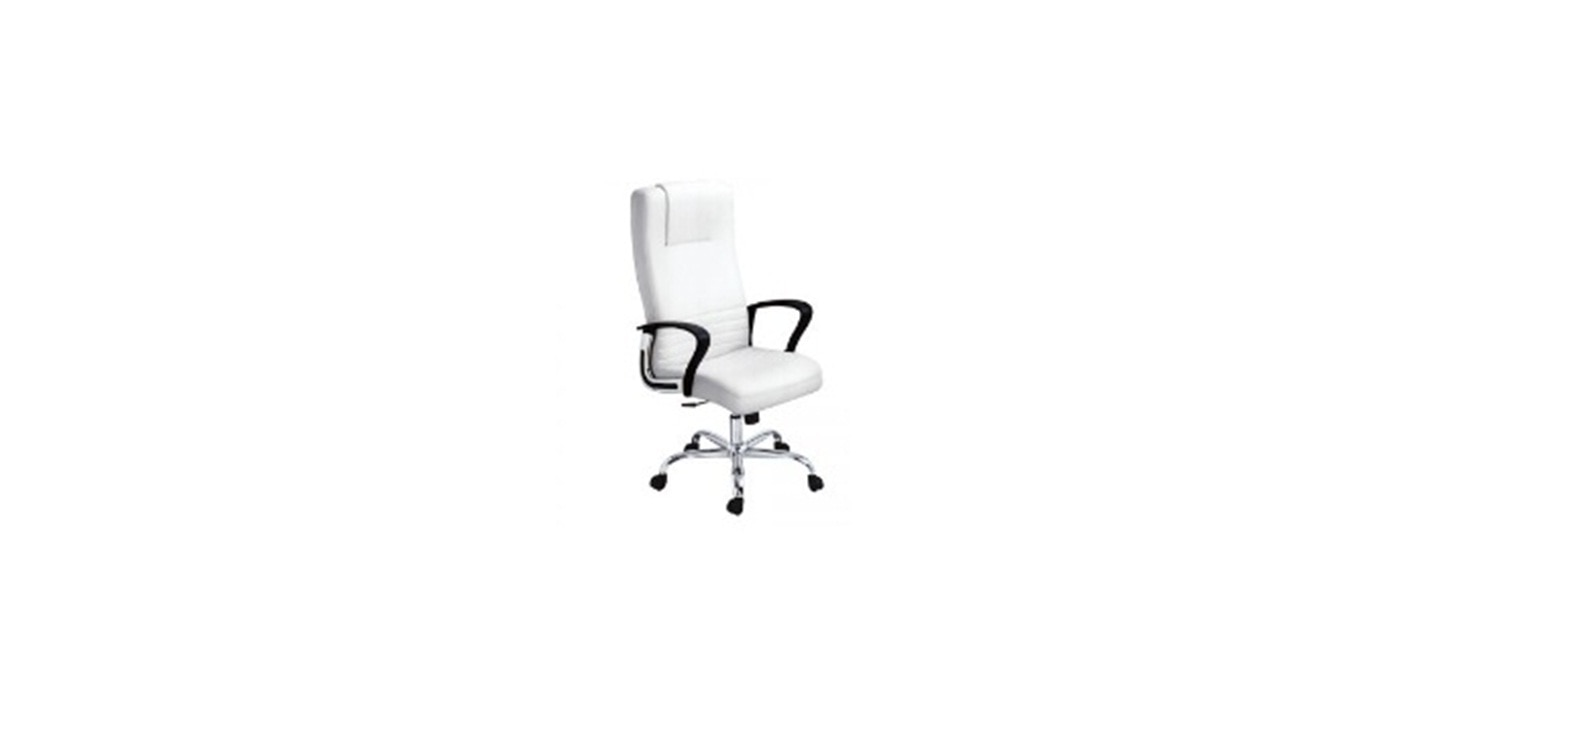 revolving chair mechanism clam ice fishing high back d 210 indore india from r k